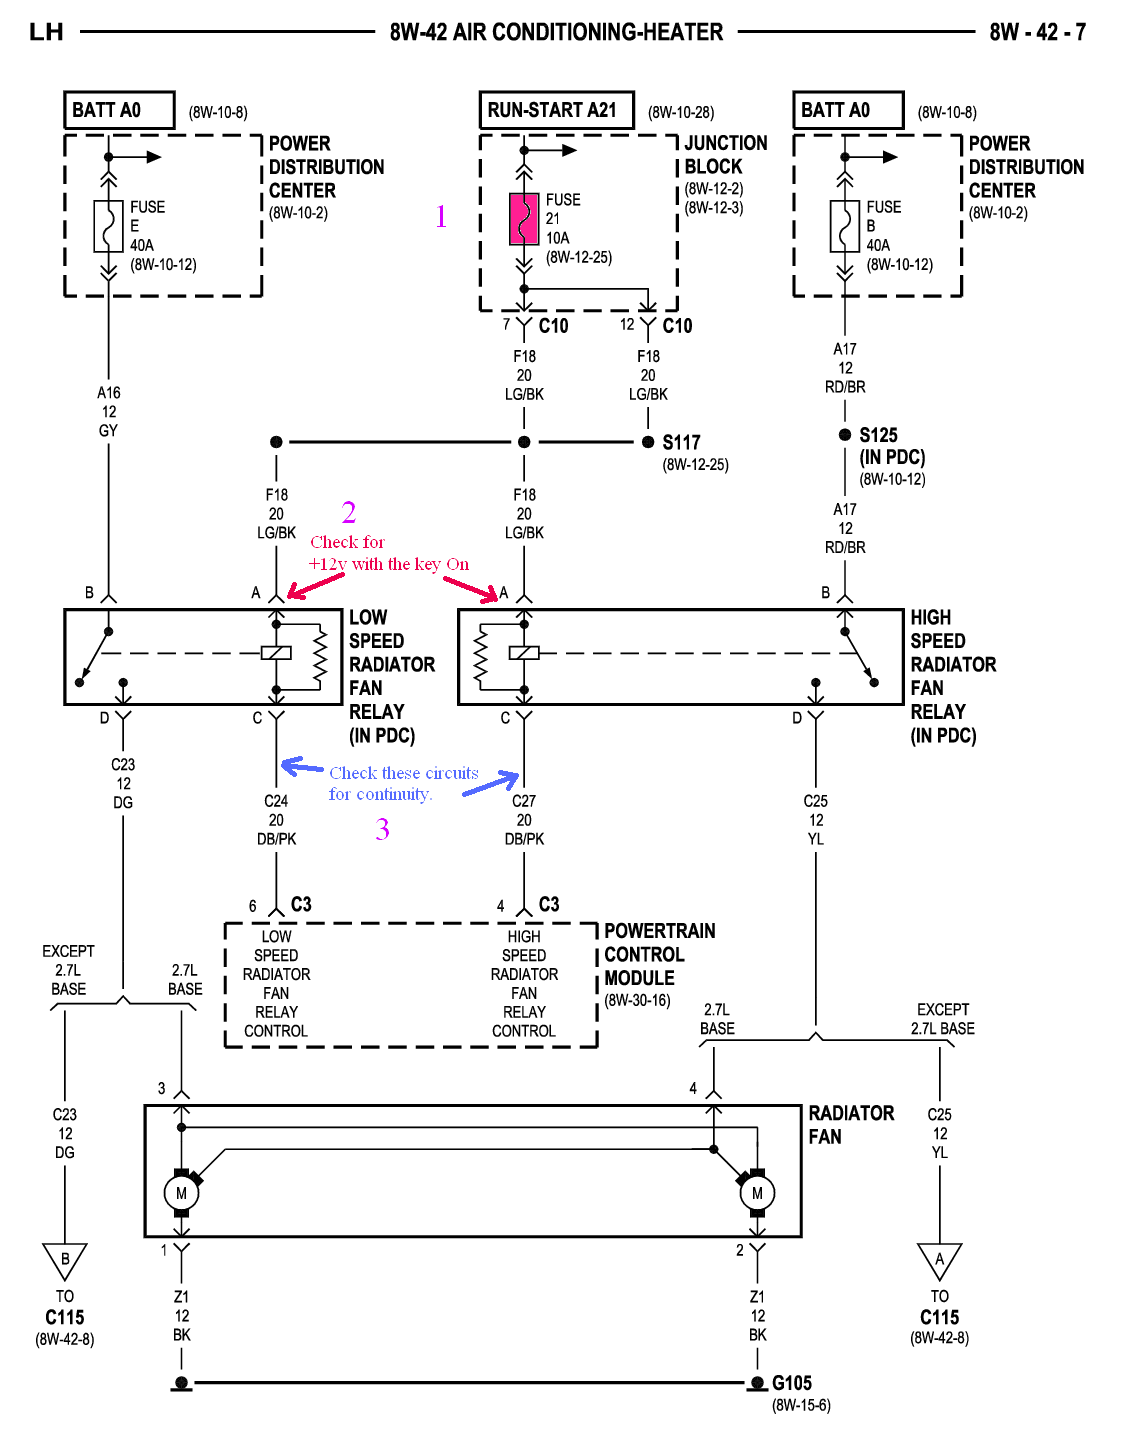 chrysler lhs stereo wiring diagram - wiring diagram structure hear-tension  - hear-tension.vinopoggioamorelli.it  hear-tension.vinopoggioamorelli.it